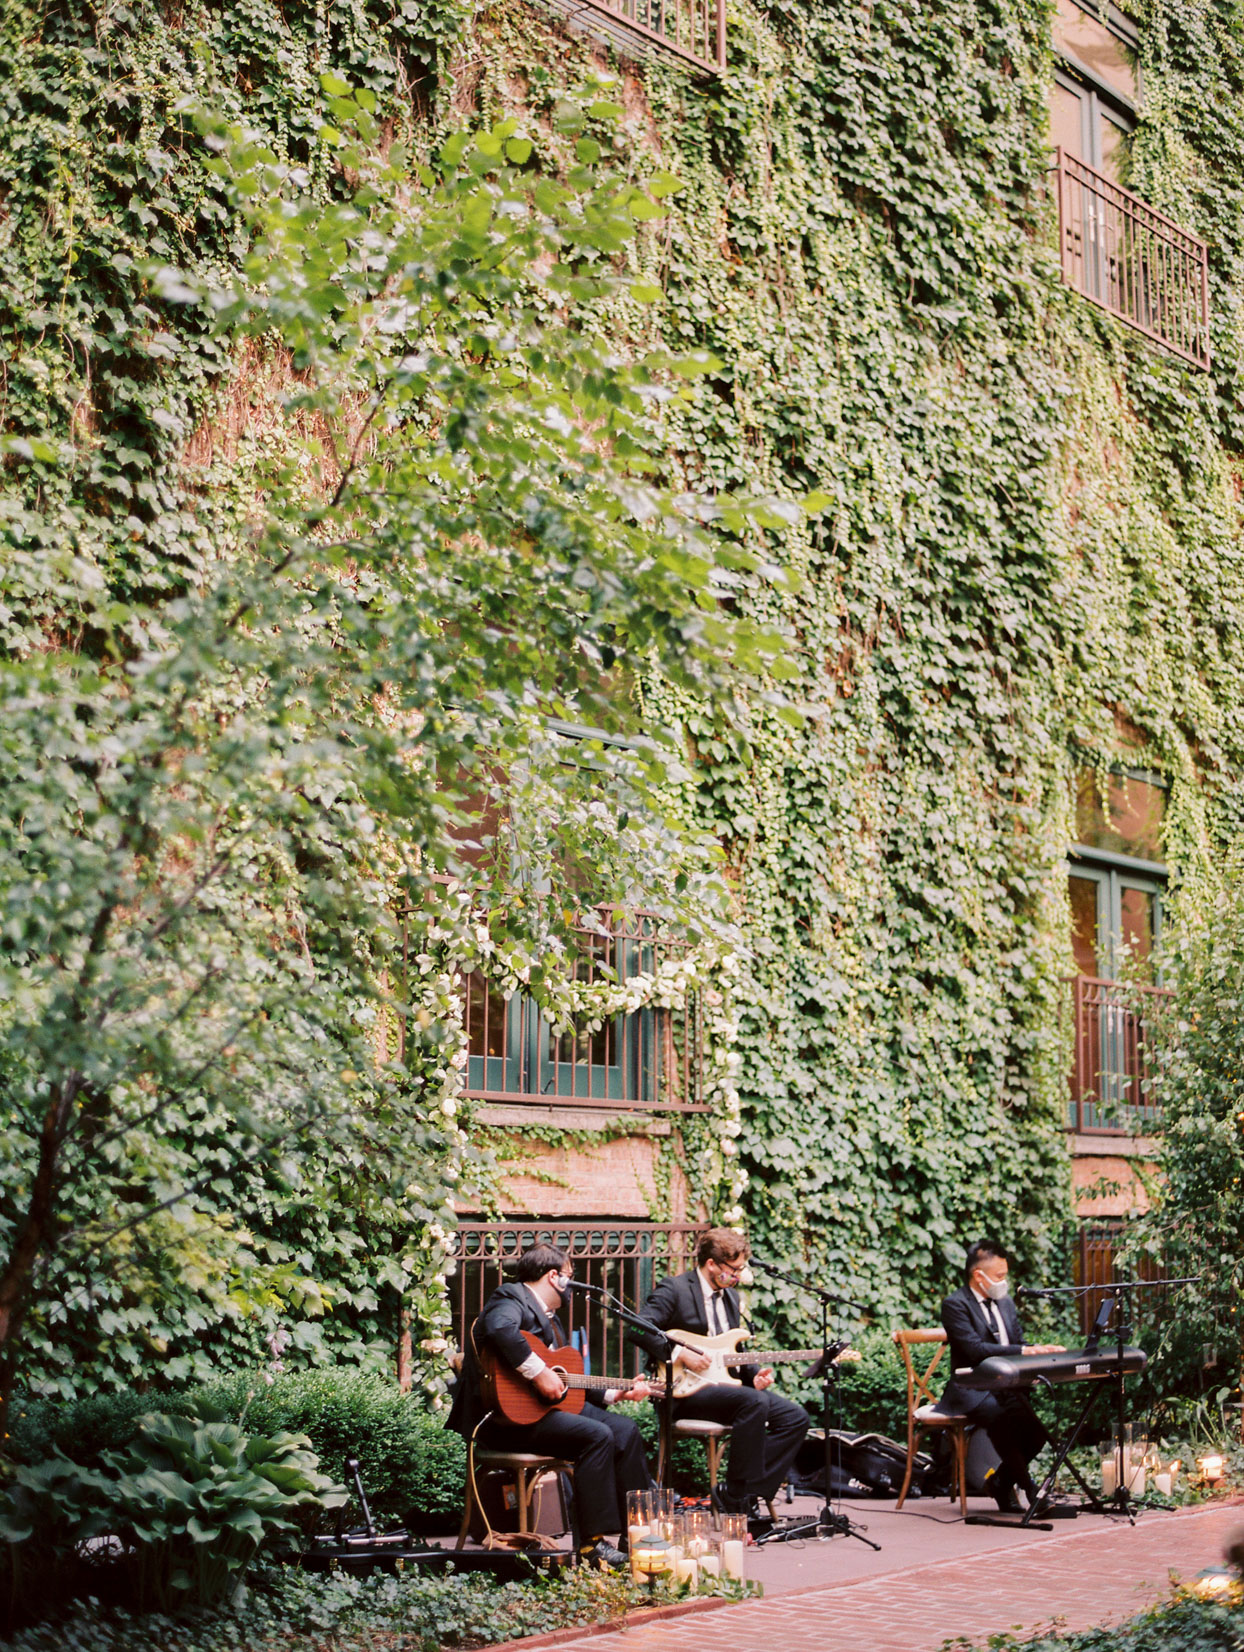 musicians playing in front of ivy wall